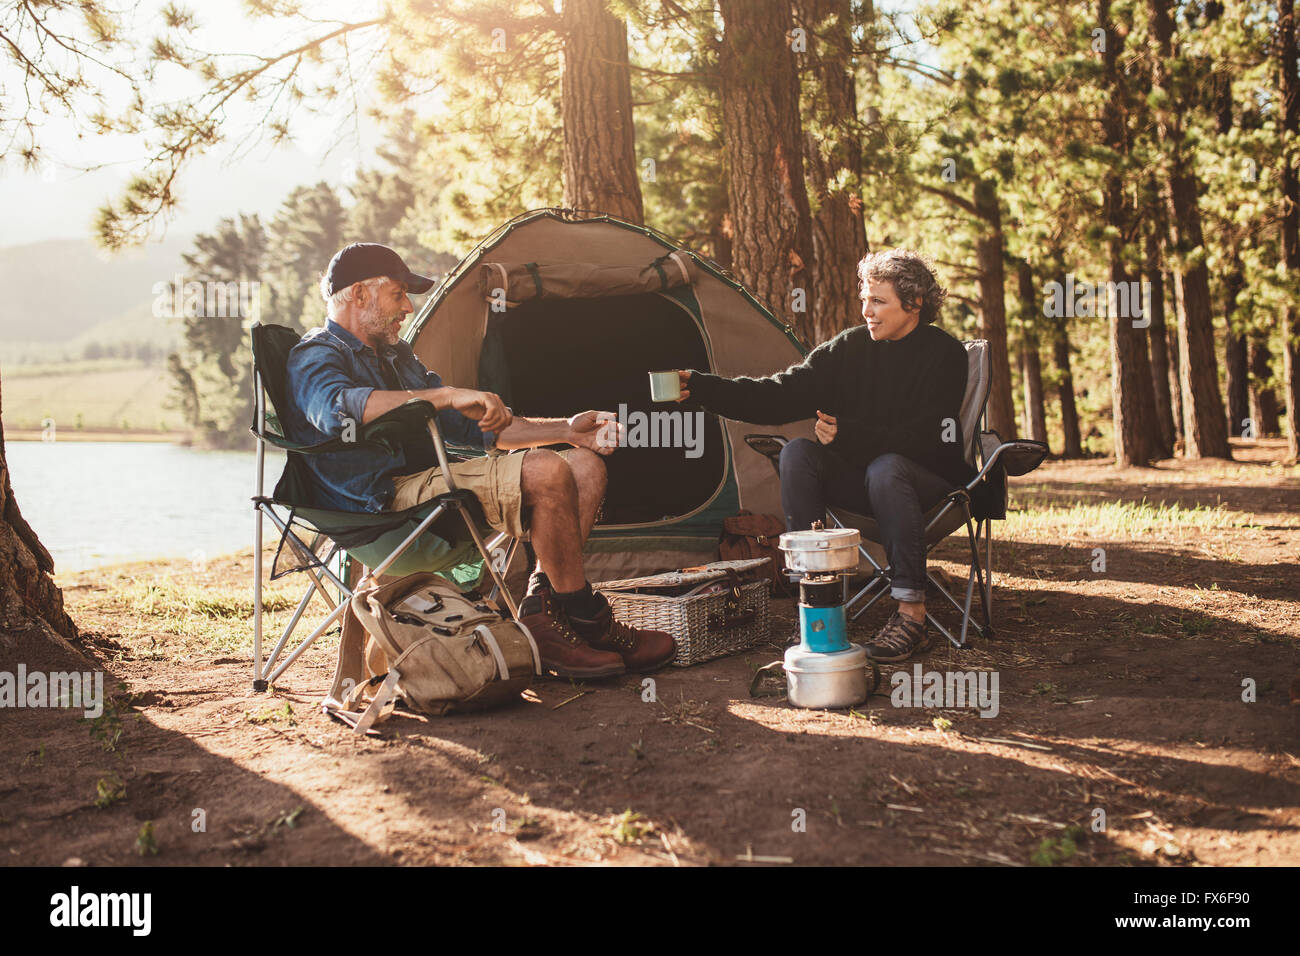 Portrait of senior couple camping by a lake, with woman giving a cup of coffee to man. - Stock Image